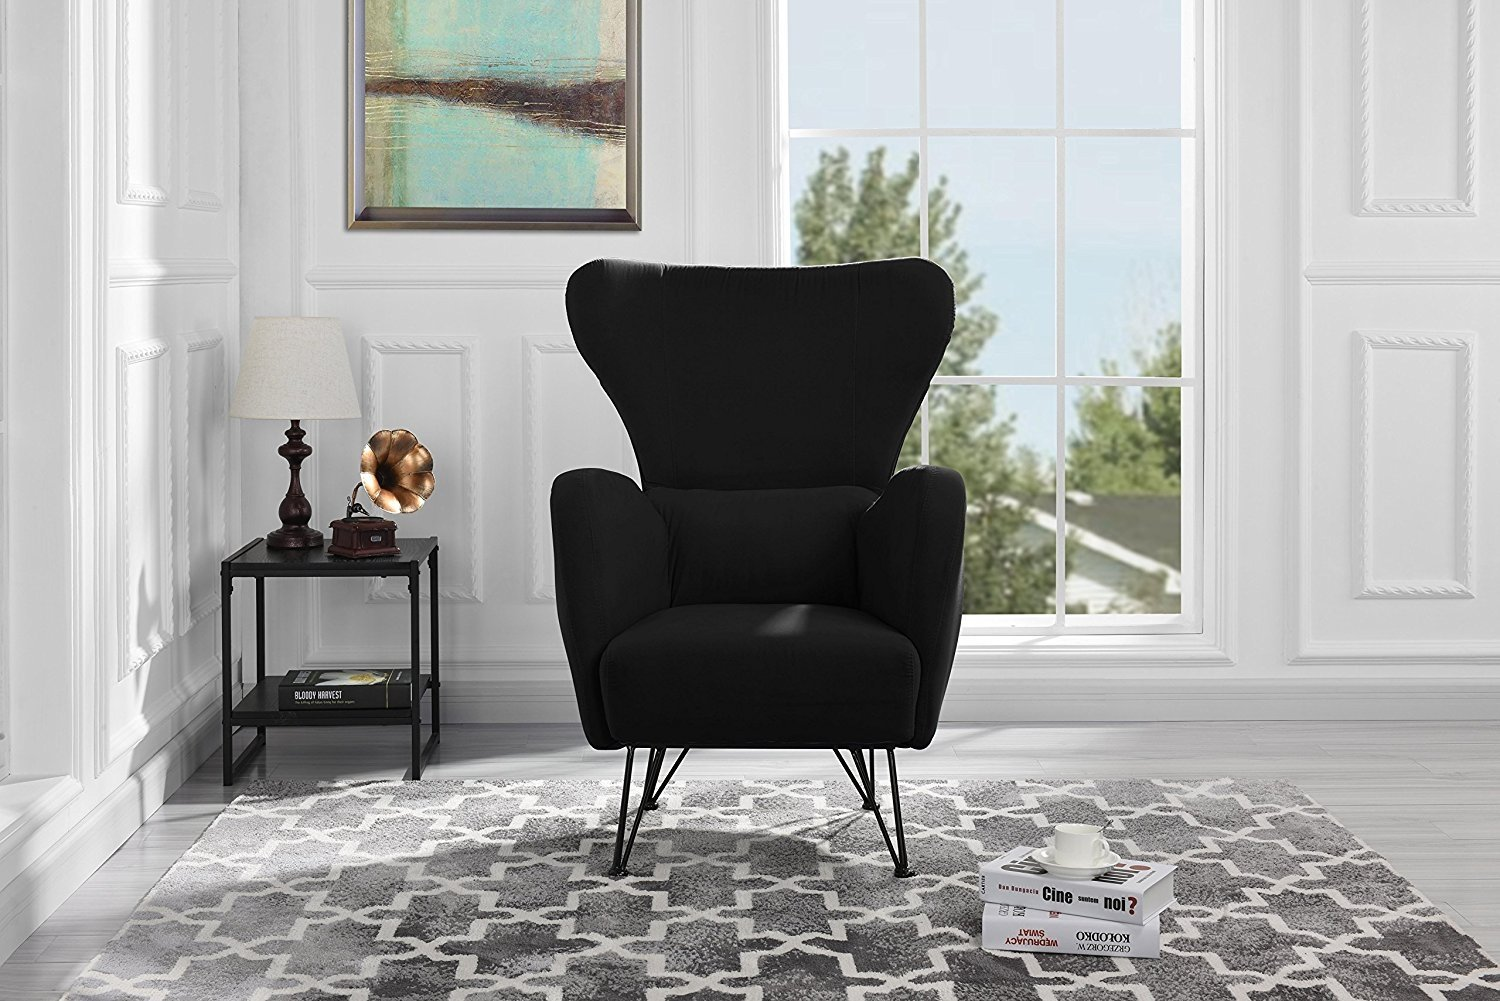 Mid-Century Modern Velvet Accent Armchair with Shelter Style Living Room Chair (Black) by Sofamania